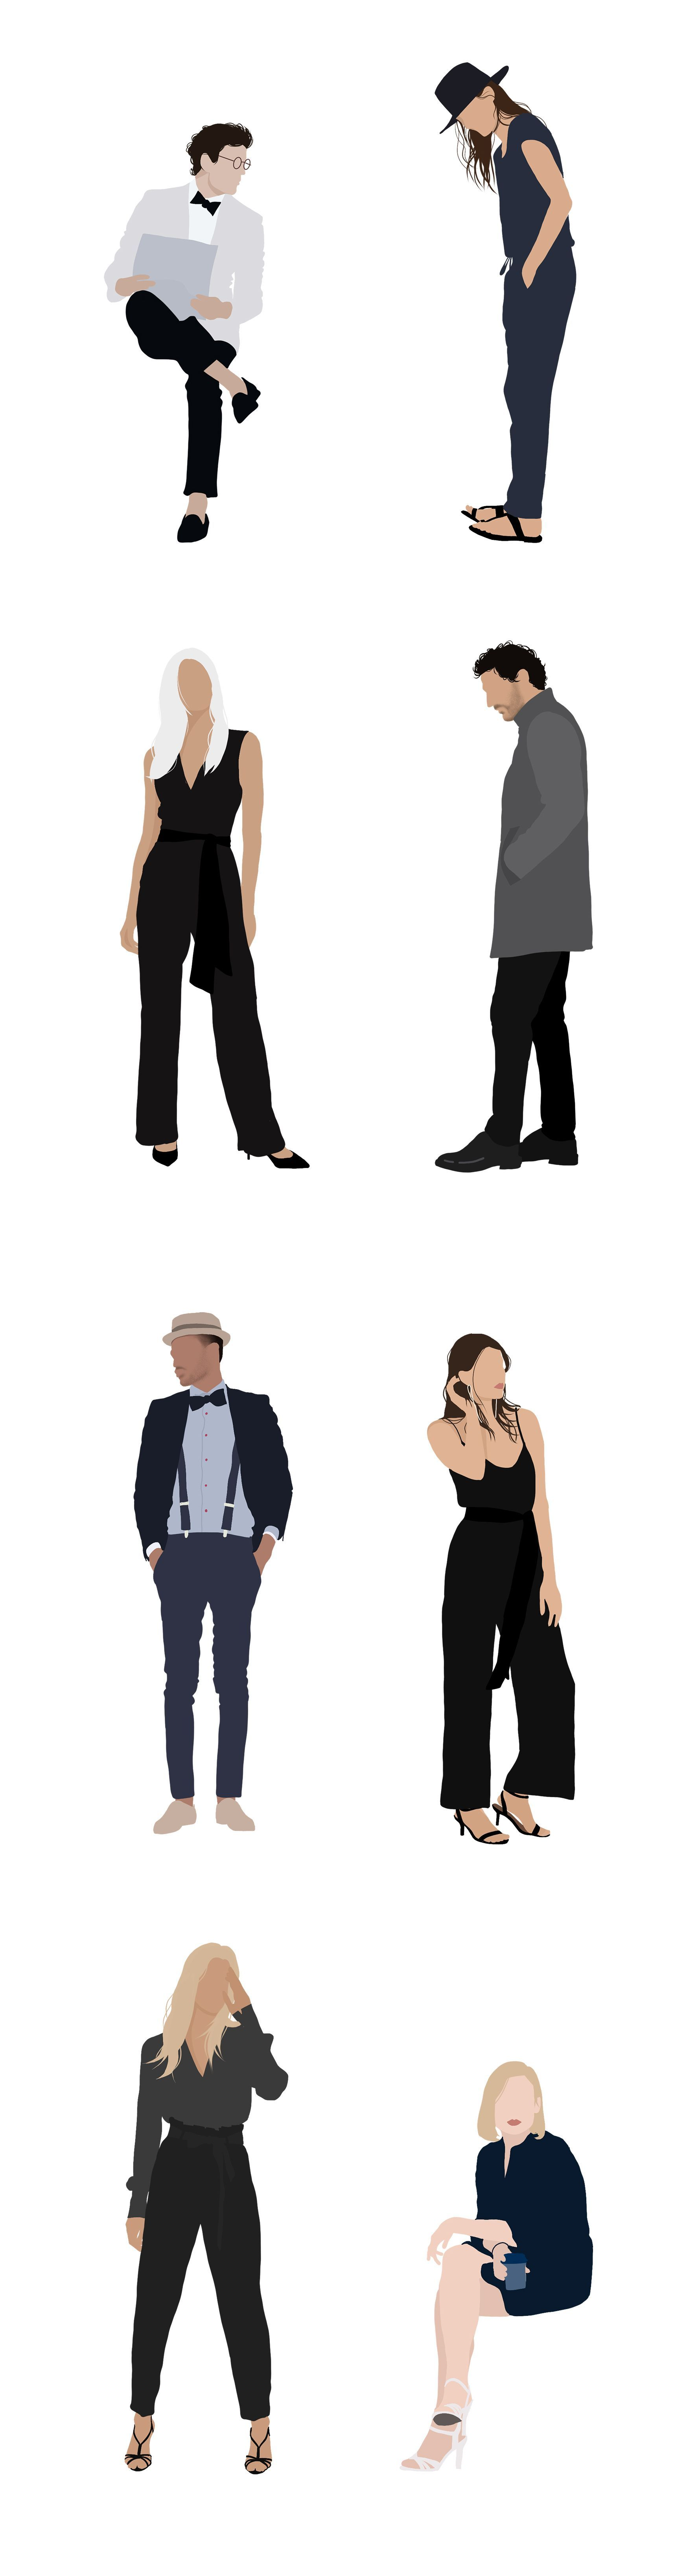 Illustration Package Clipart Package People Vector Person People Vector Human Woman Png Man Ai8 People Illustration People Png Person Silhouette